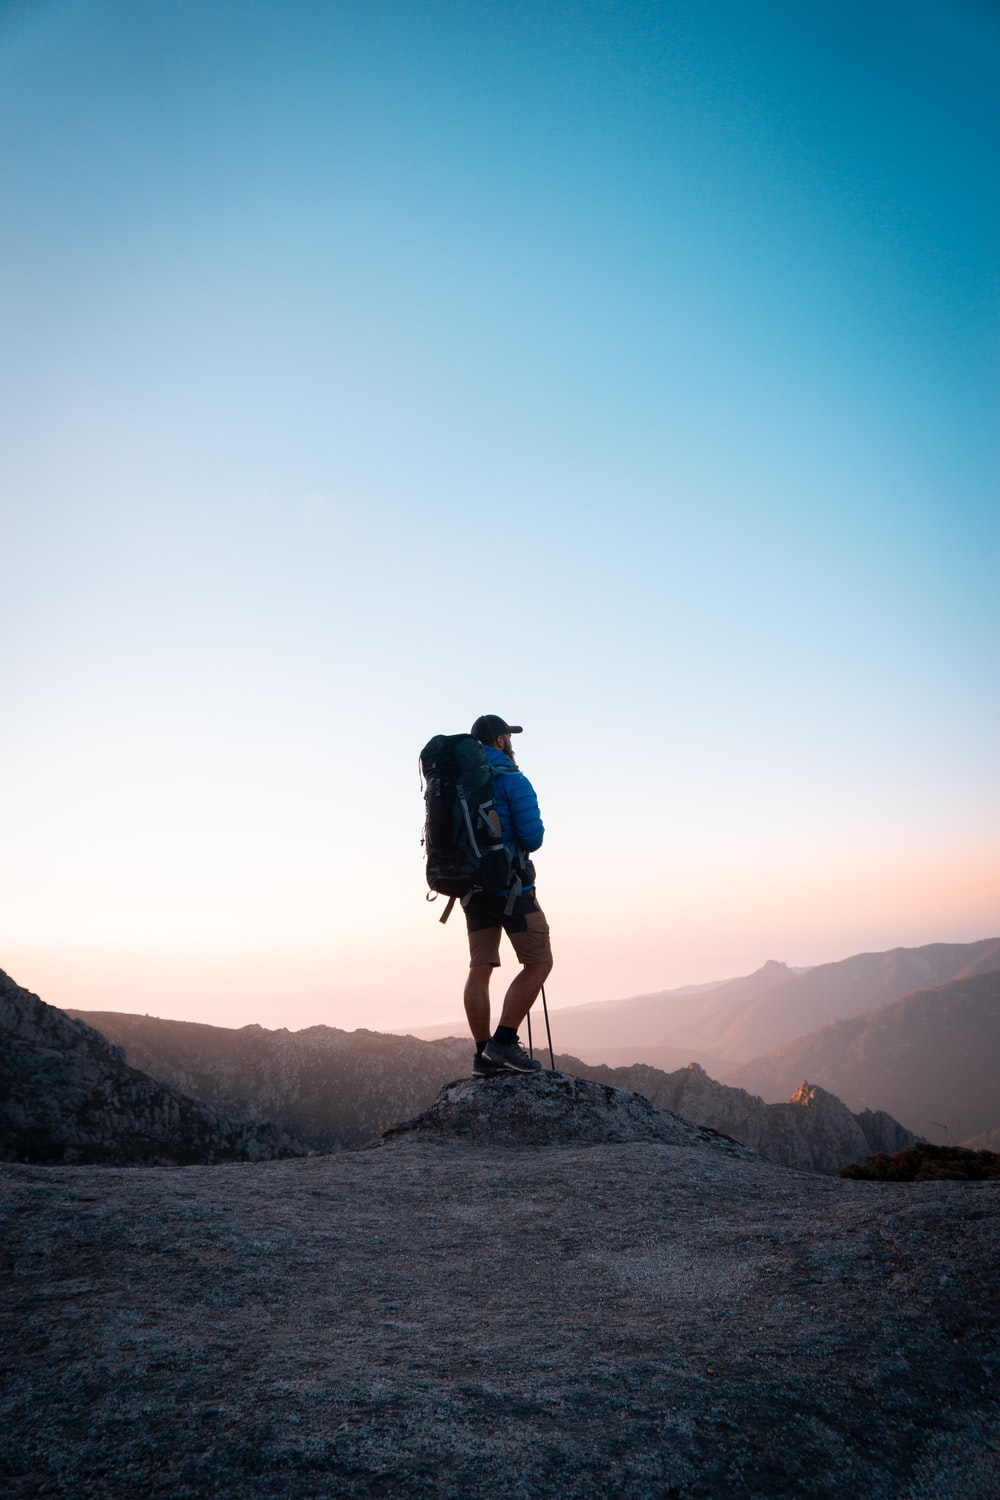 man in black jacket and blue denim shorts with black hiking backpack standing on mountain during